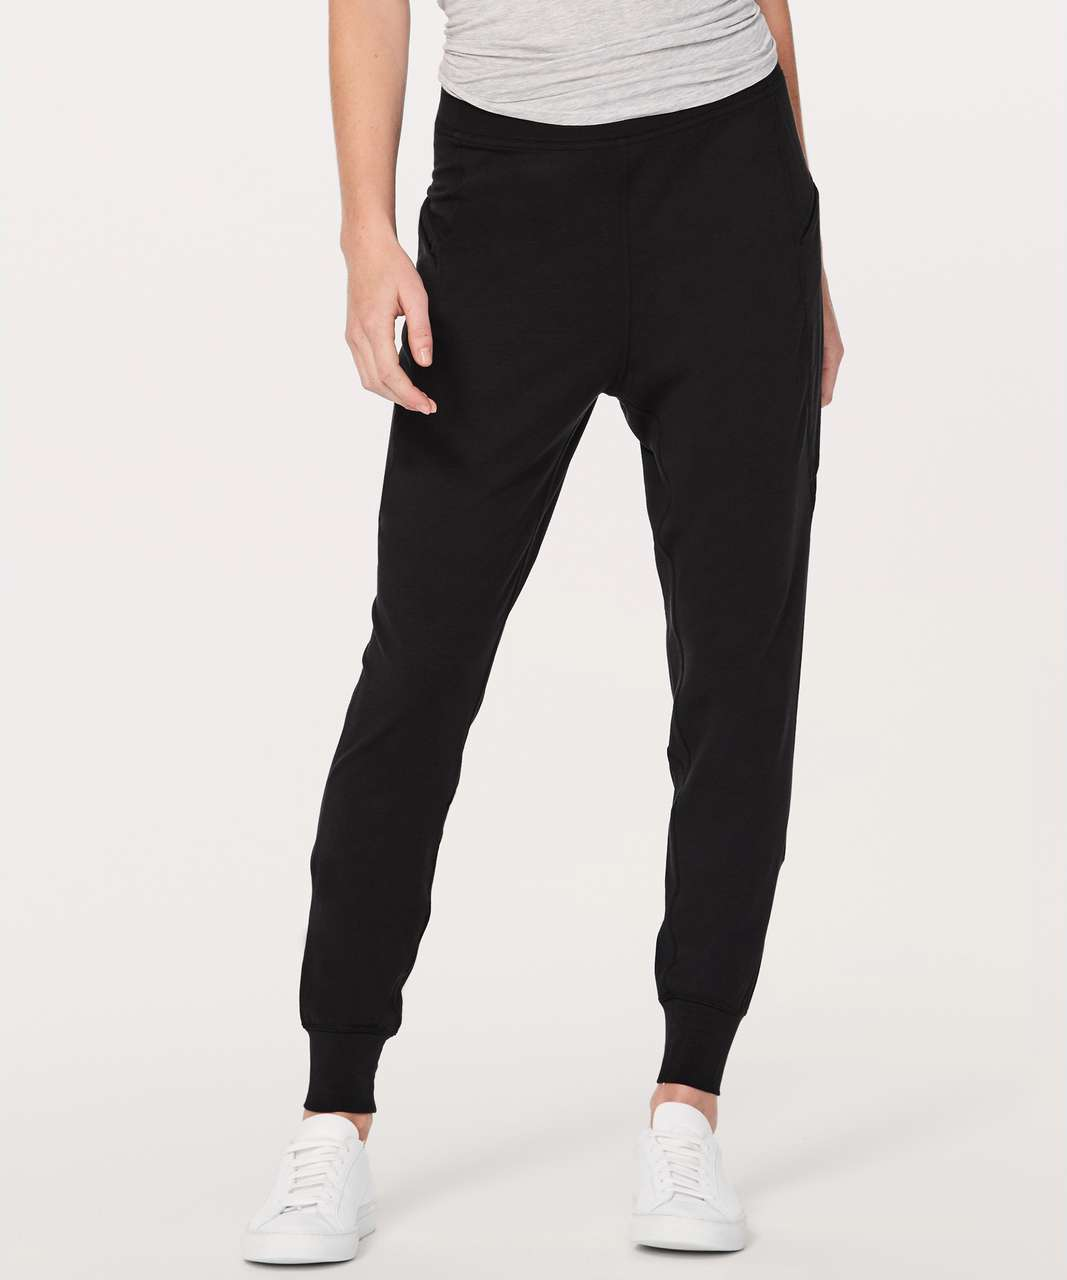 """Lululemon Meant To Move Pant 27"""" - Black"""